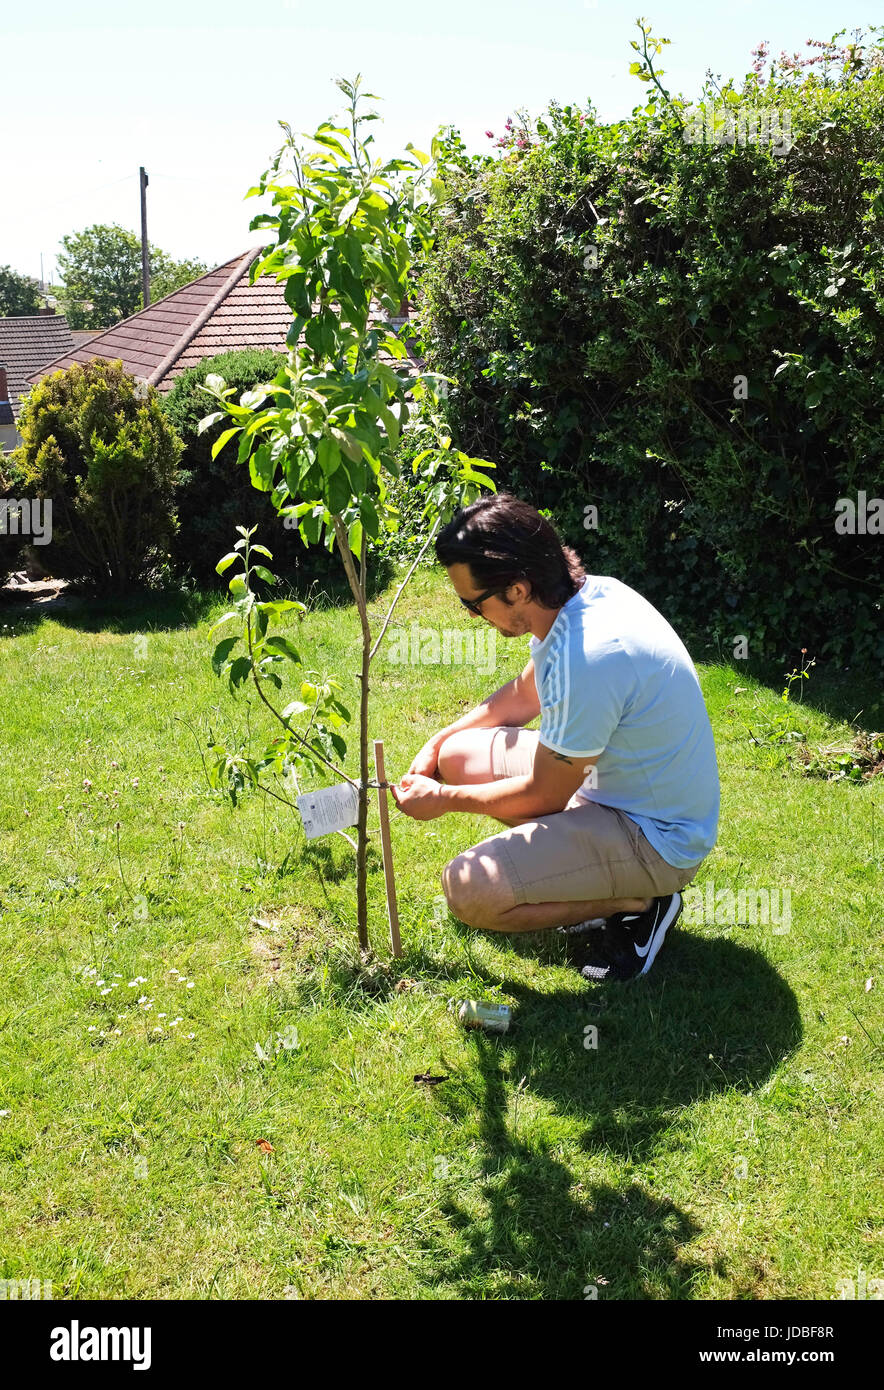 Young man gardening tending to a young apple tree - Stock Image